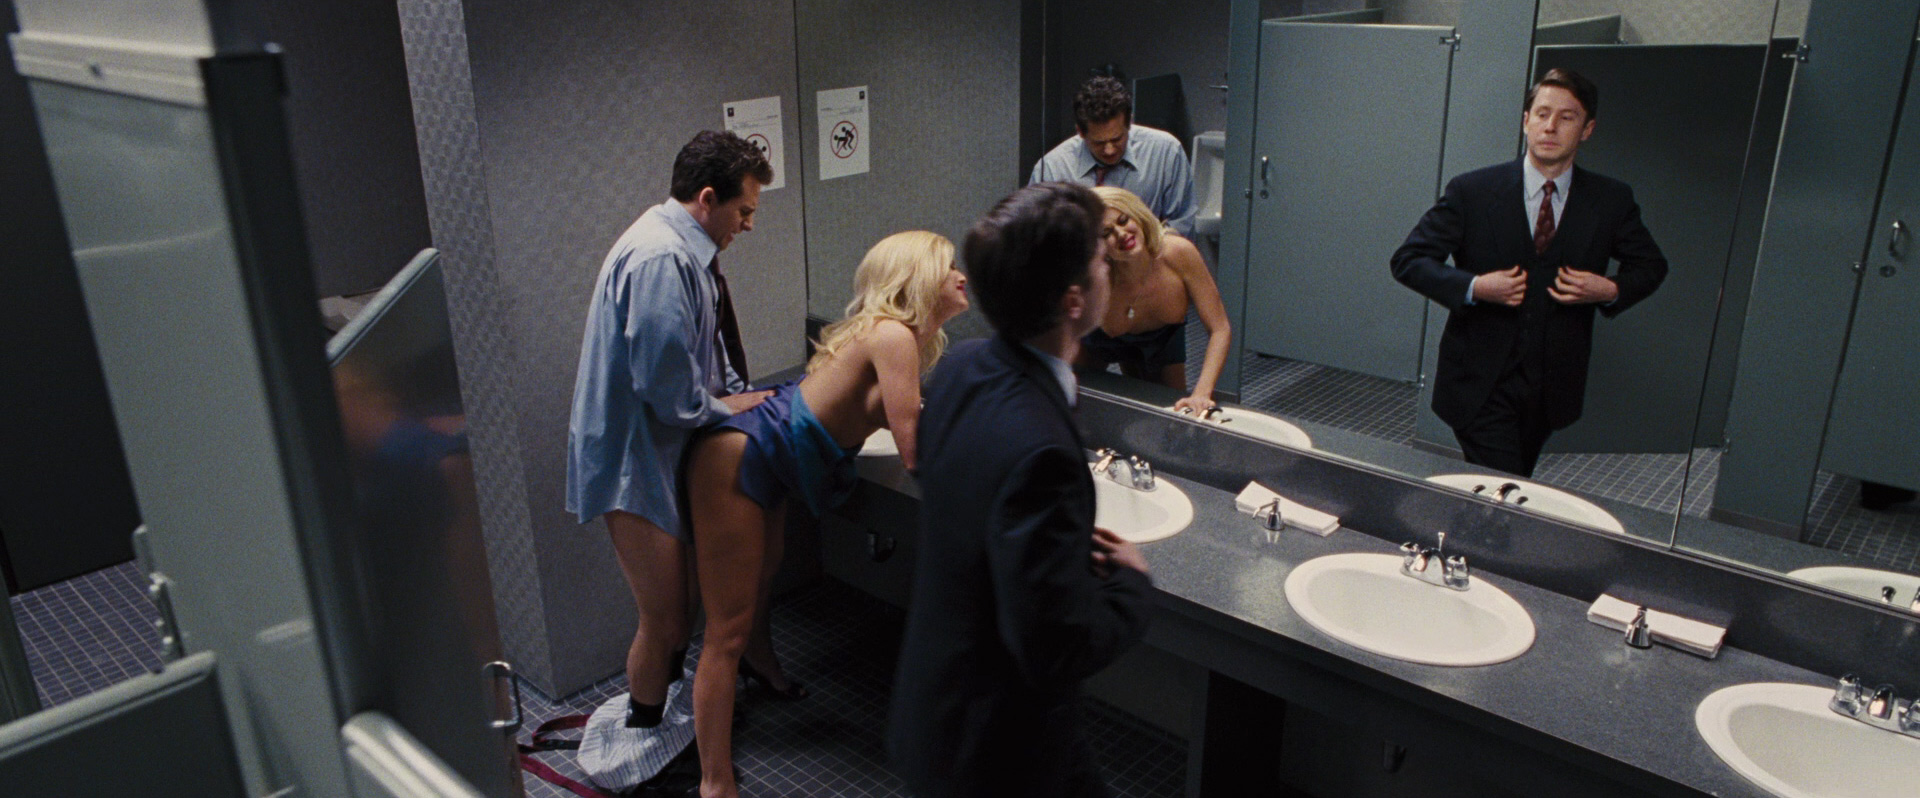 Leonardo Dicaprio On Body Double Rumors For The Wolf Of Wall Street Sex Scenes